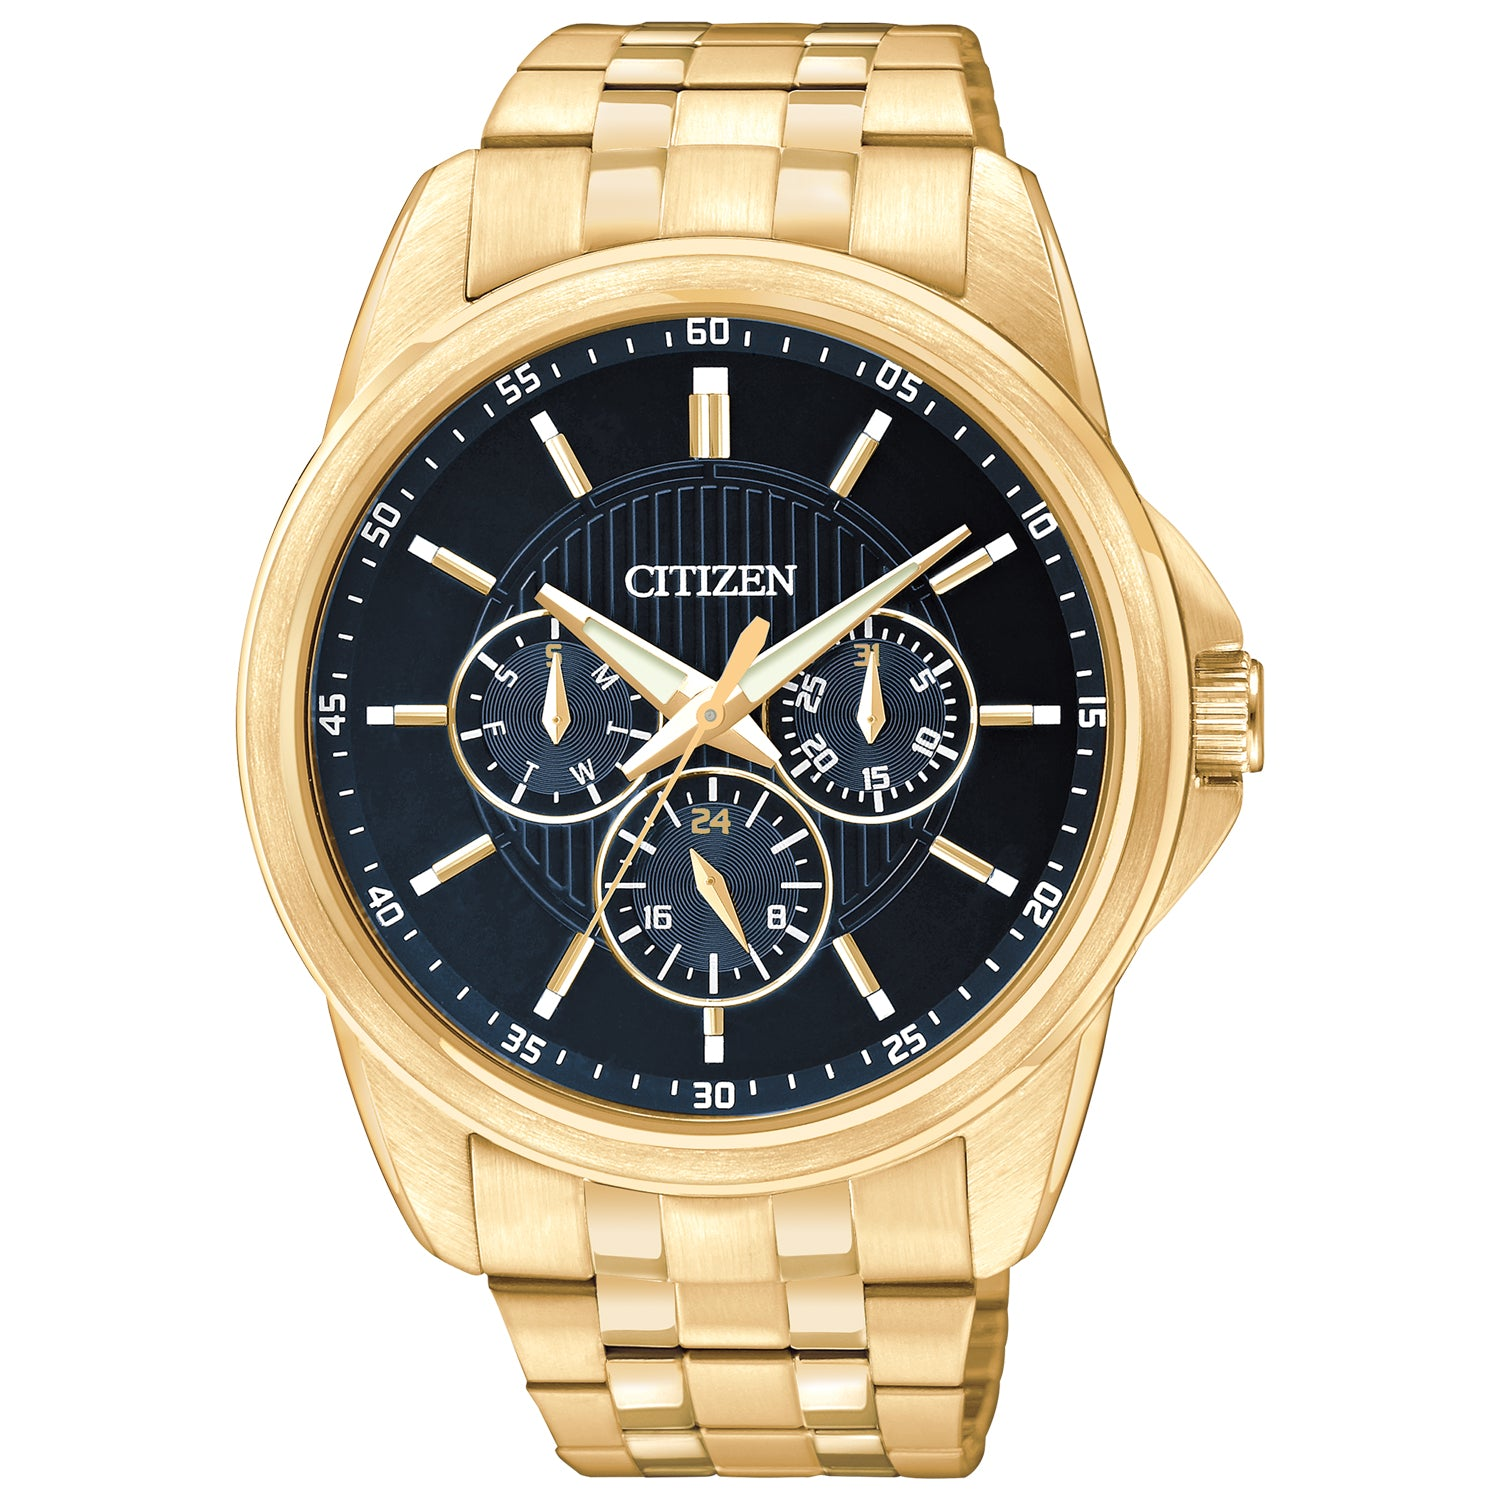 Citizen MENS GOLD TONE STAINLESS STEEL CHRONOGRAPH WATCH